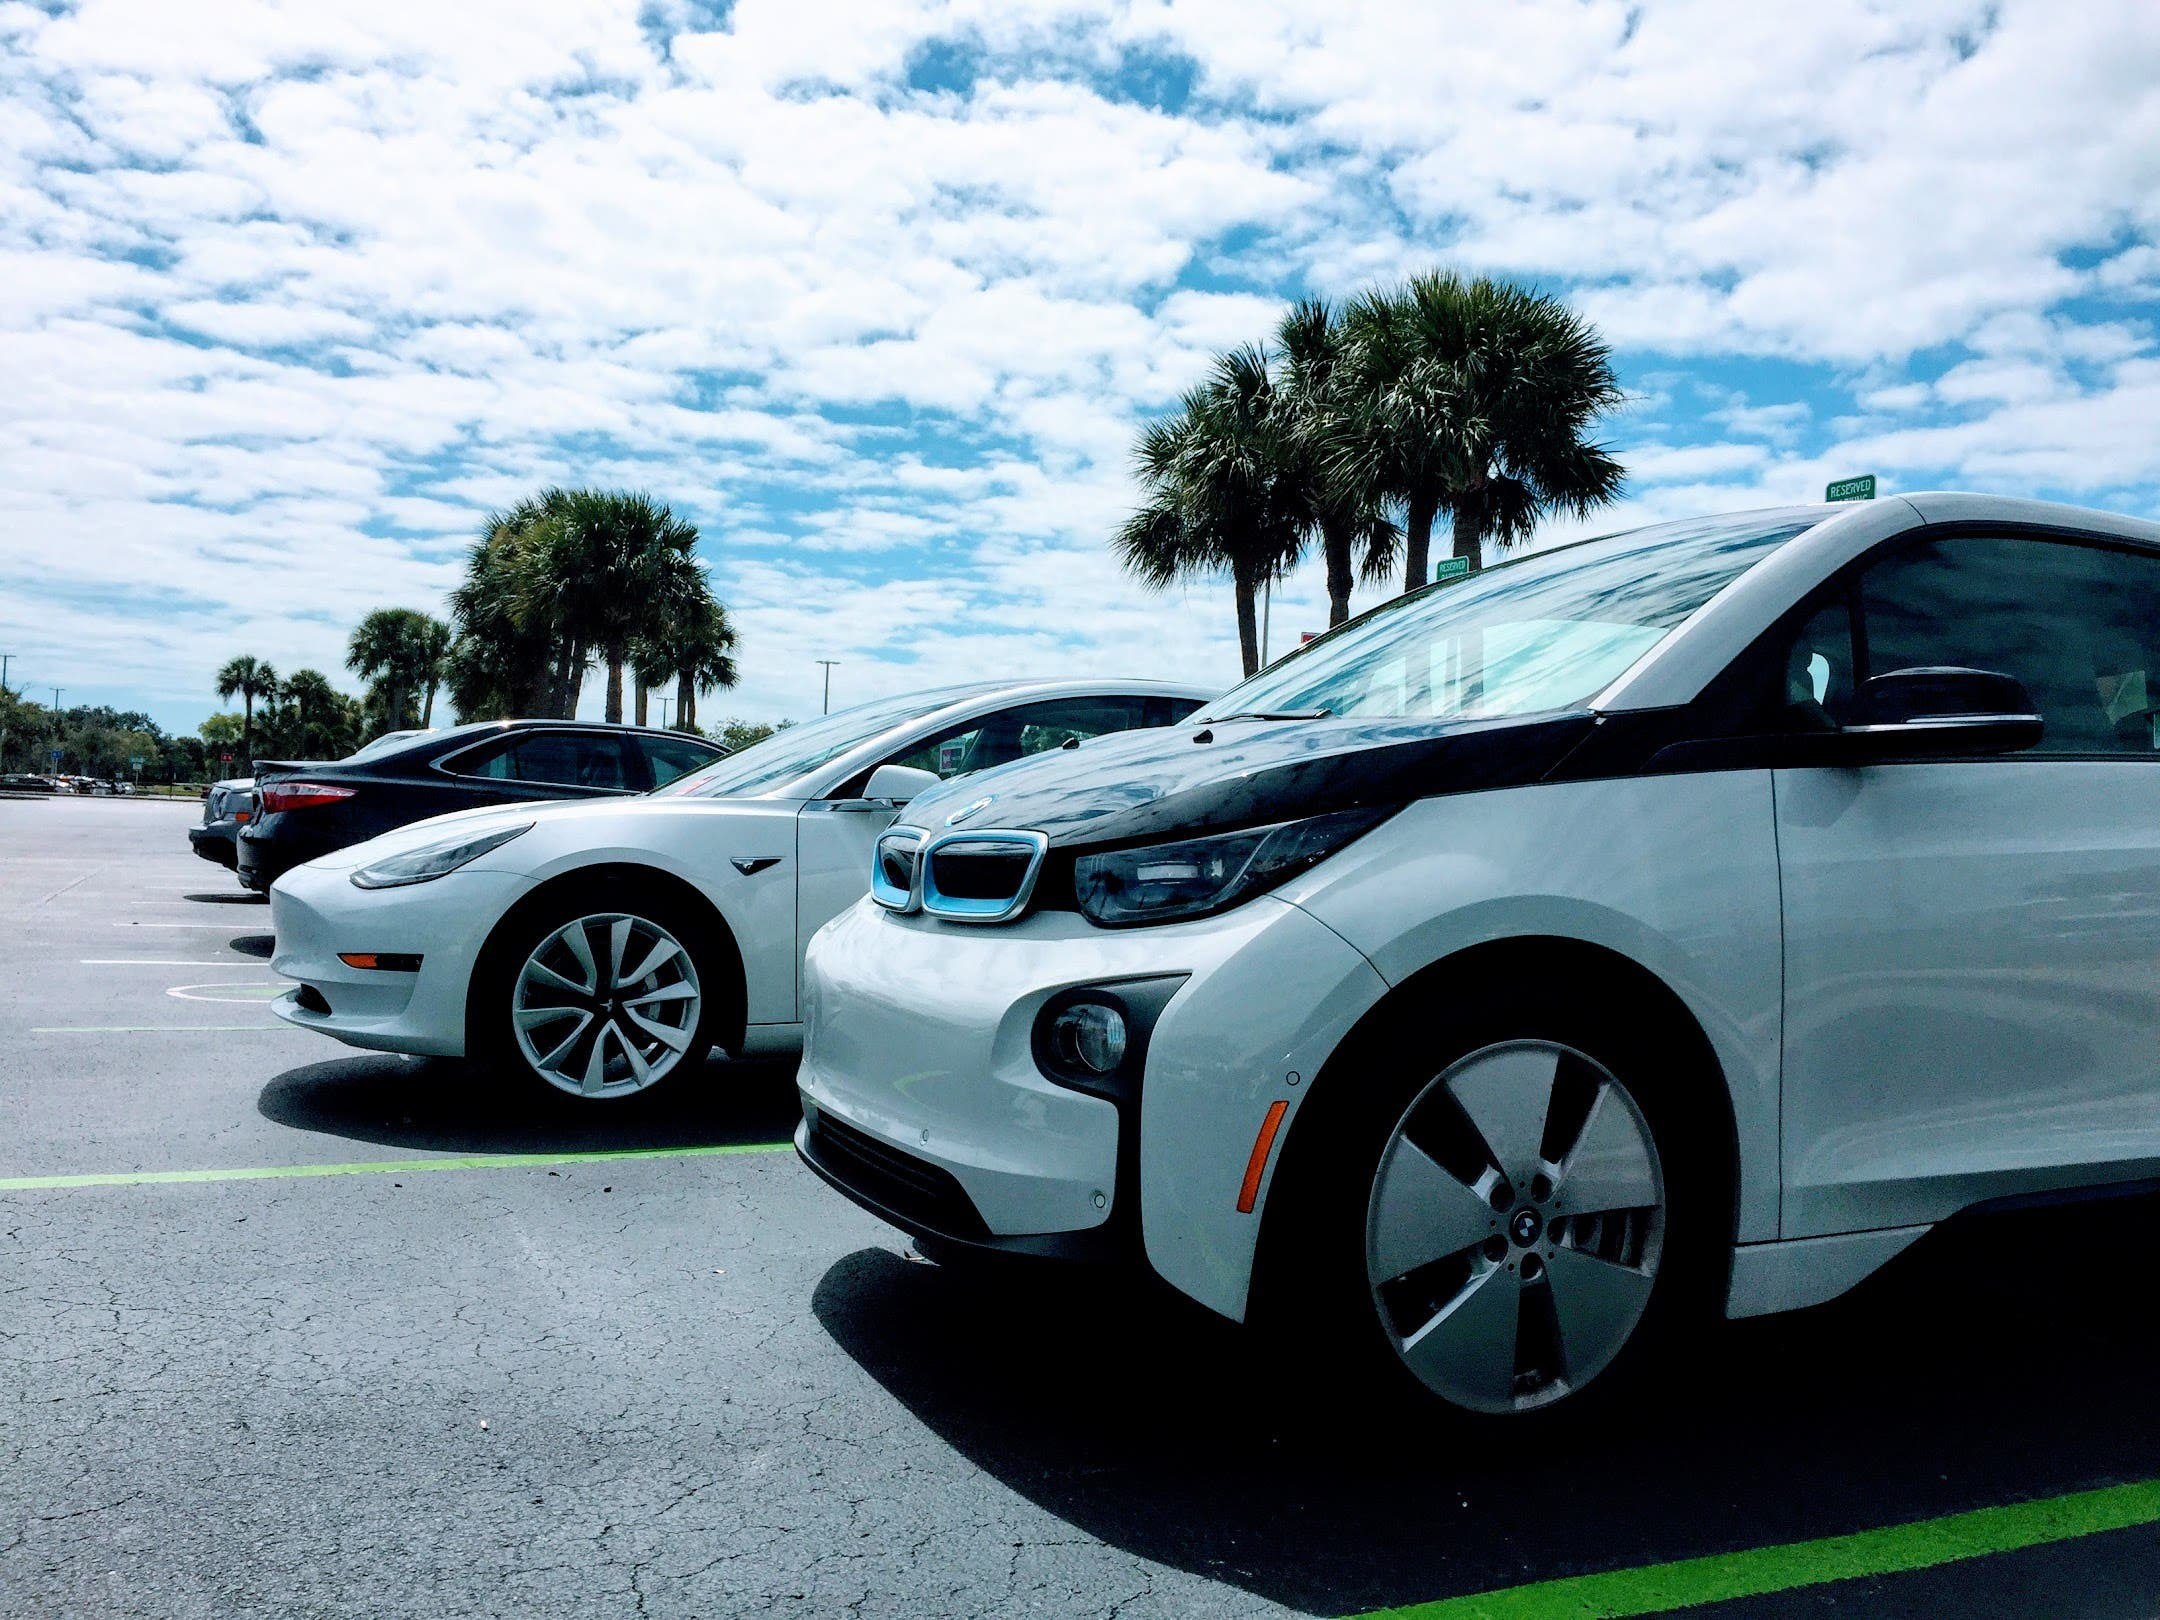 How Much Does A BMW Cost >> Cost Of Driving A Bmw I3 Rex For 9 Months In Florida 2 26